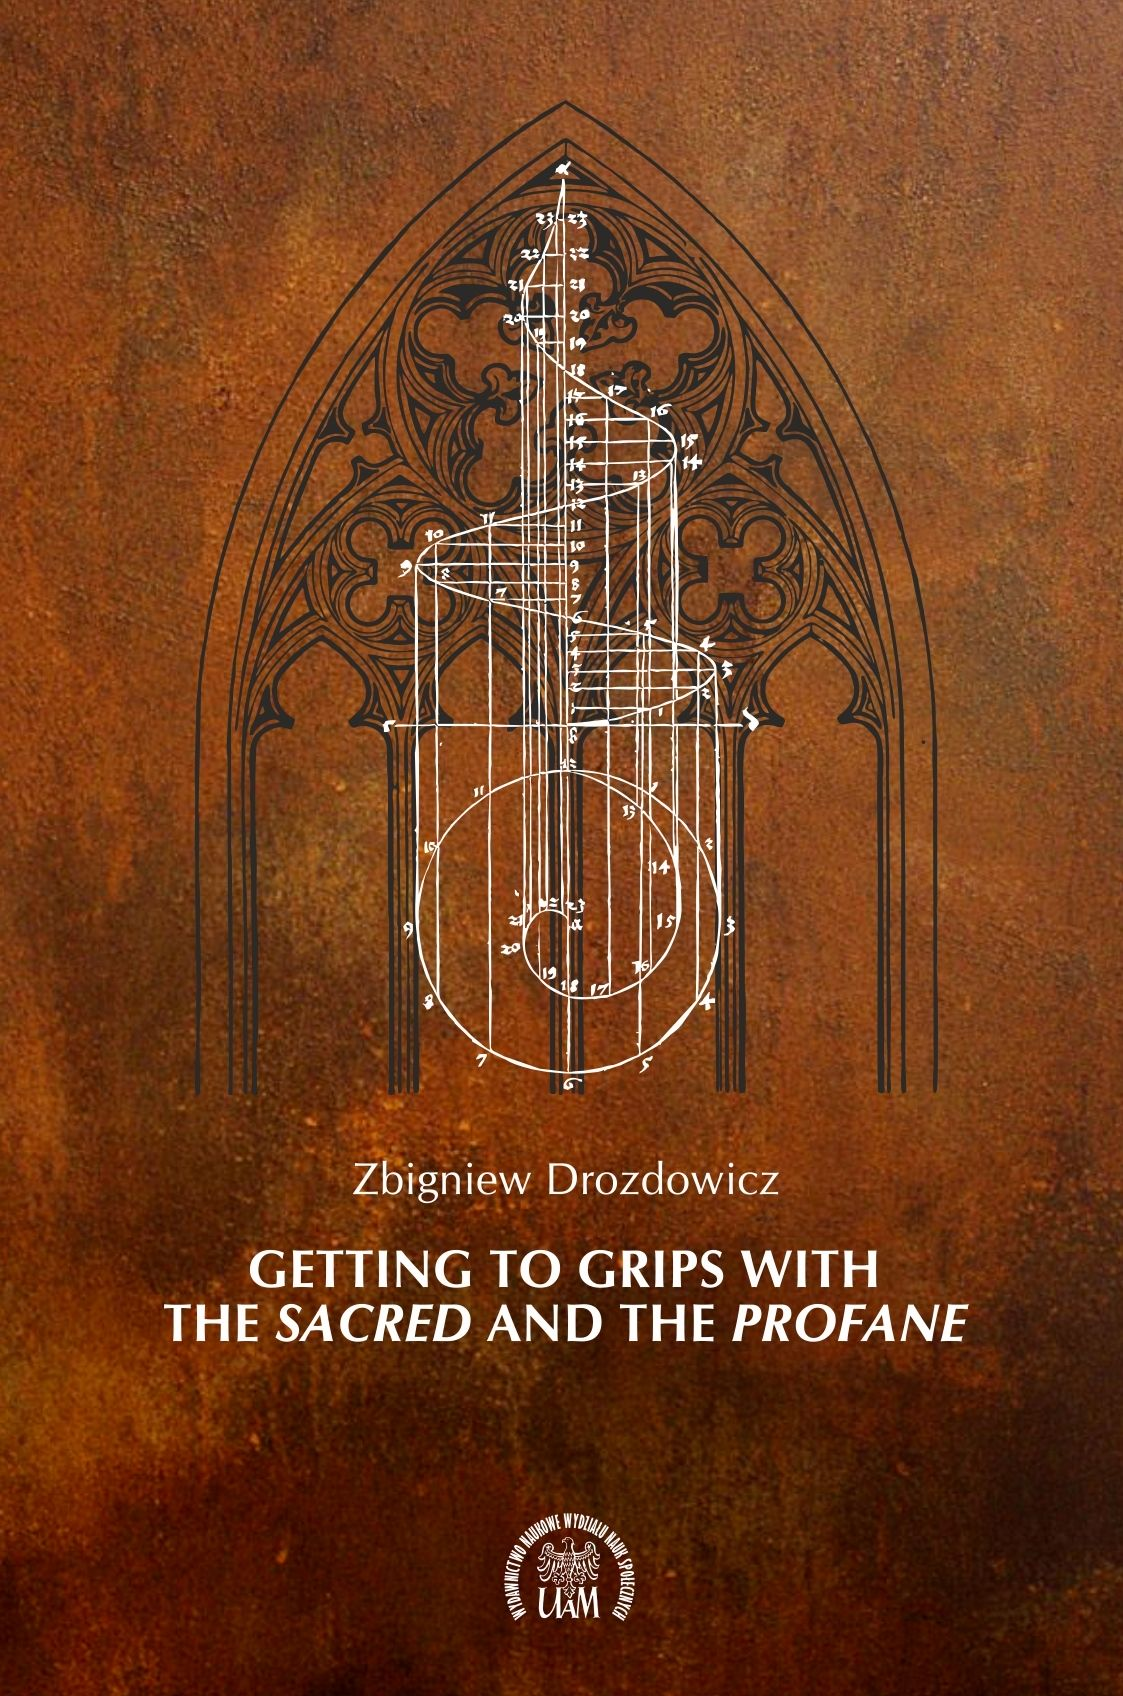 Getting to grips with the sacred and the profane - Kulturoznawstwo UAM